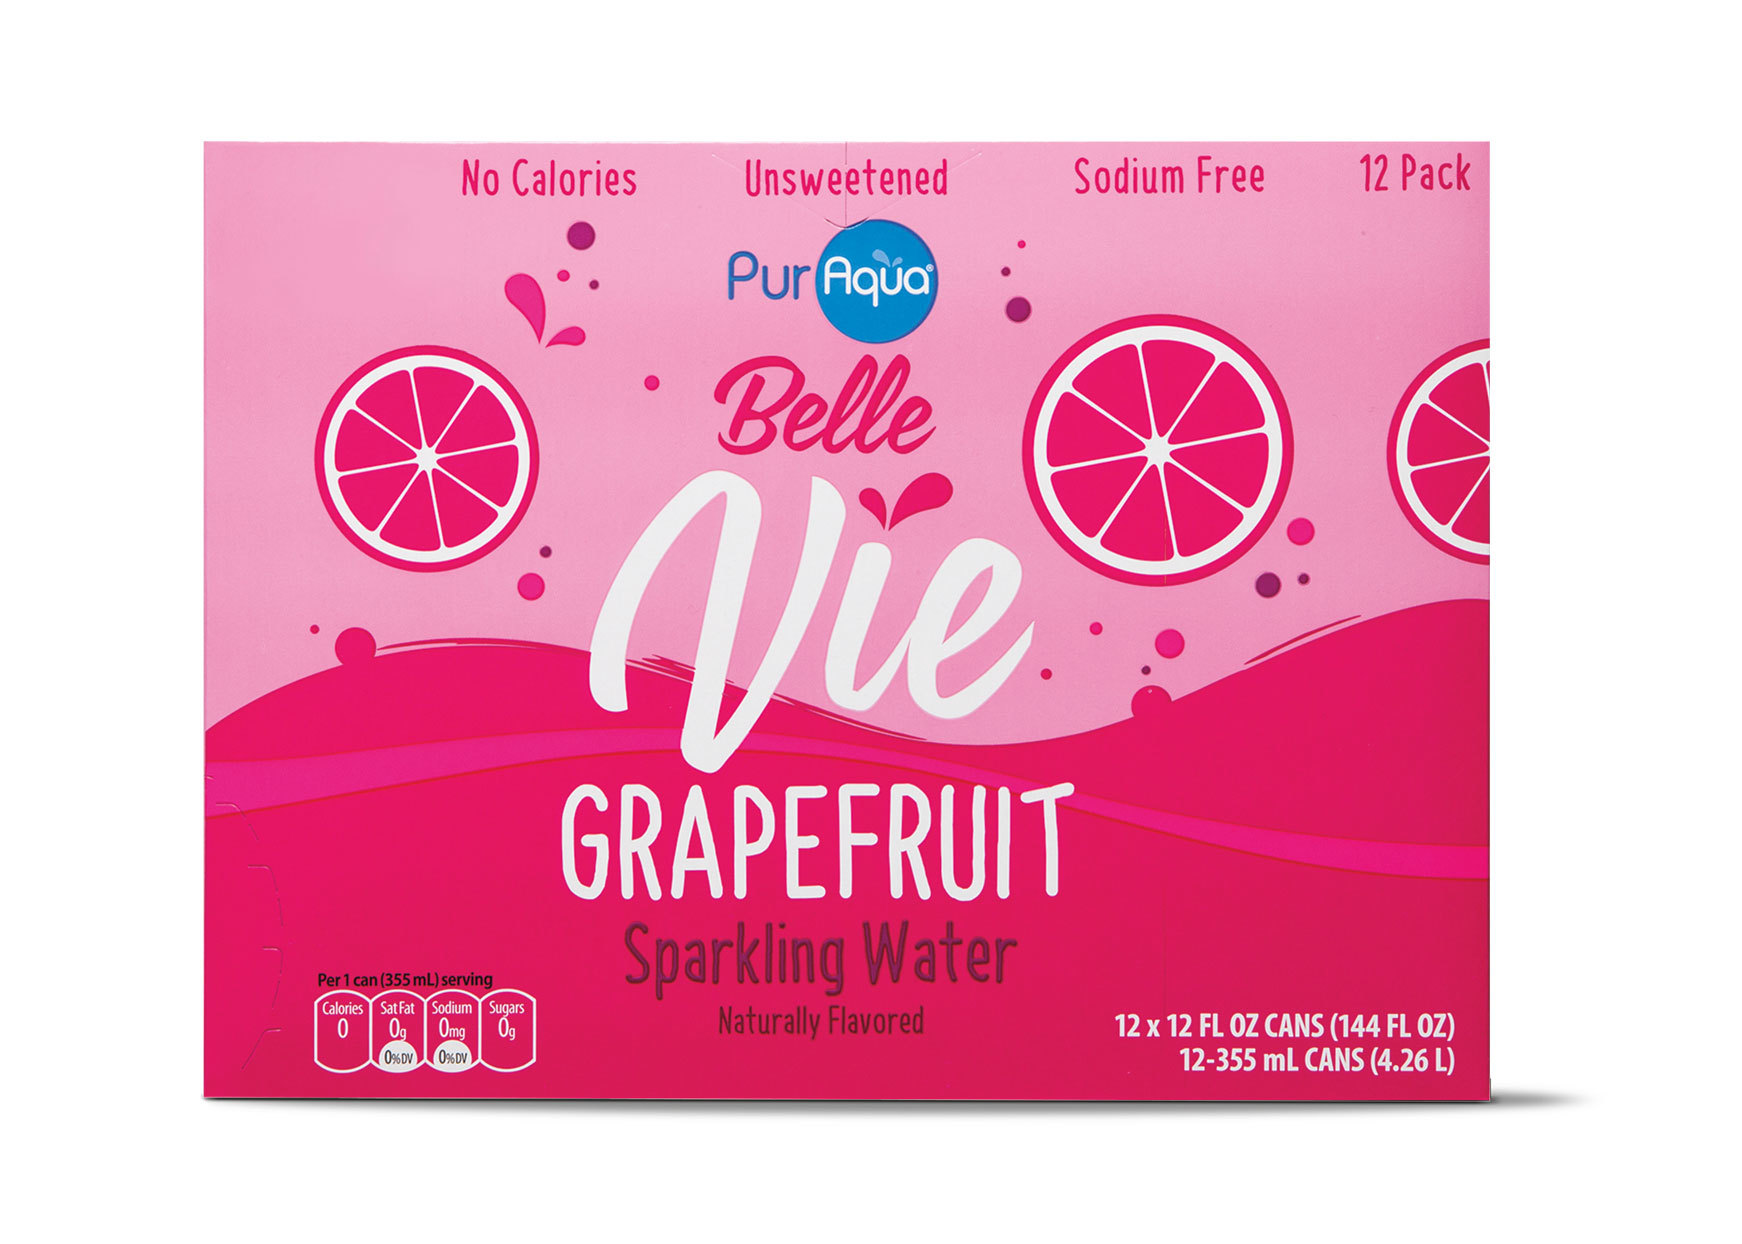 PurAqua Belle Vie Sparkling Water - box of Grapefruit flavored canned beverages